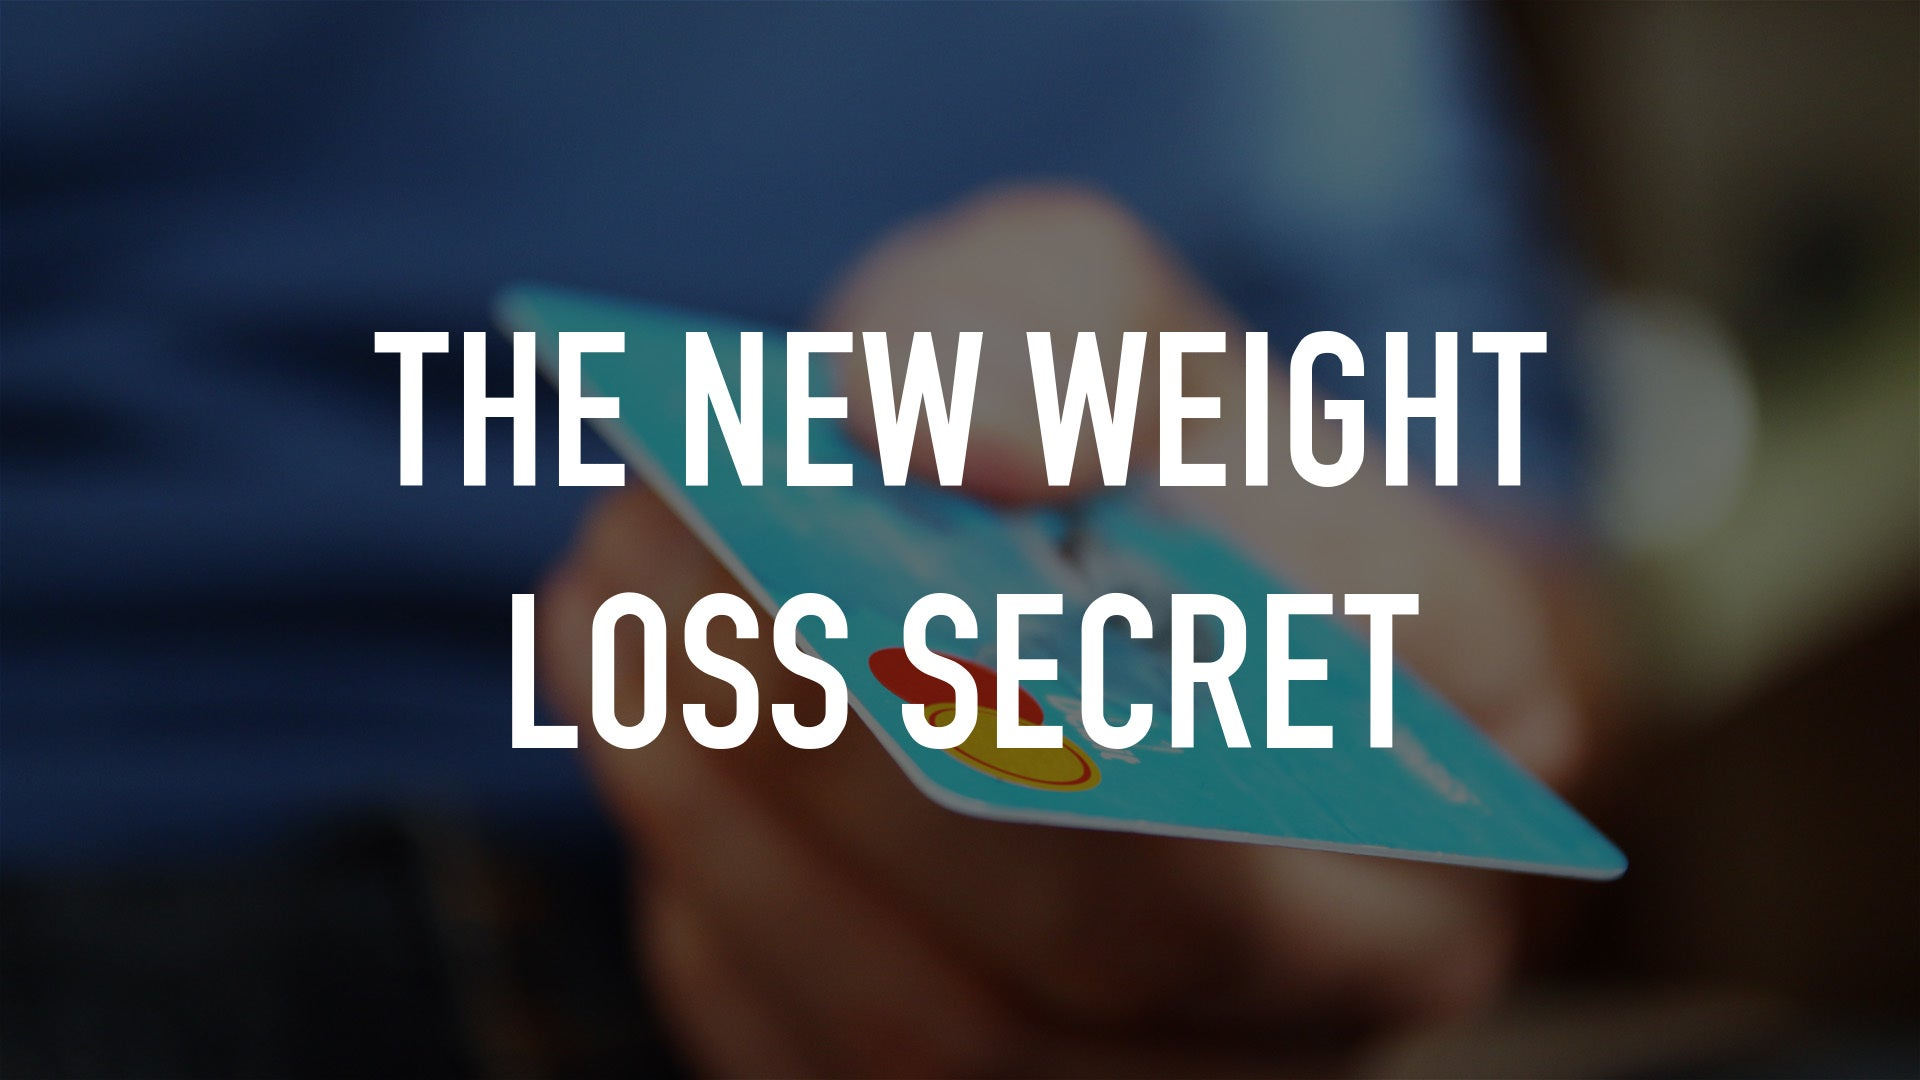 The New Weight Loss Secret